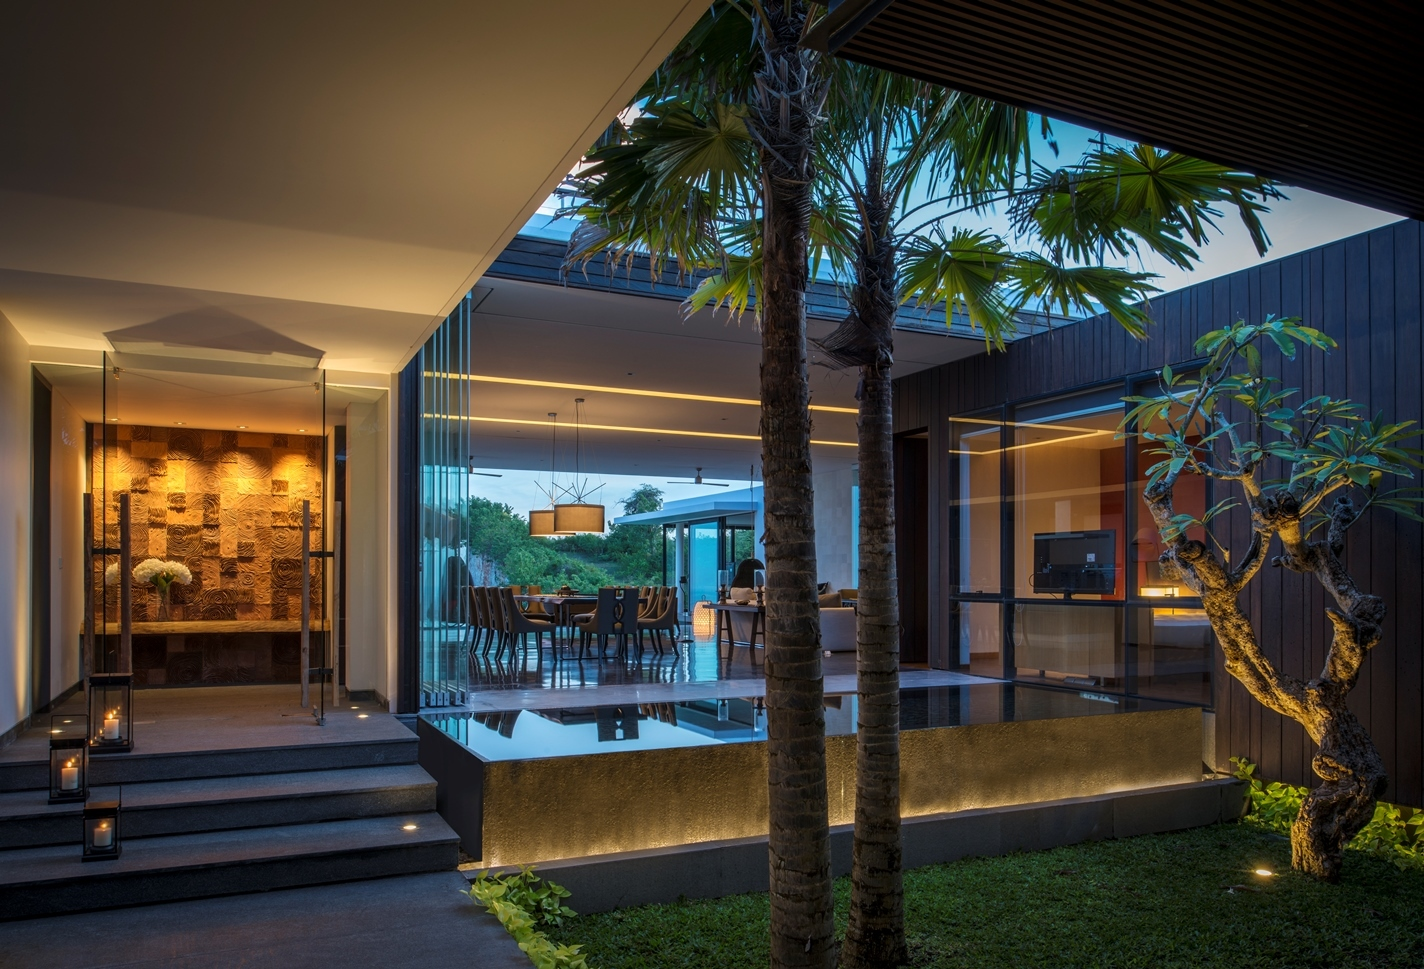 Modern Tropical Home with Interior Courtyard Resort Villa With Balinese Theme  iDesignArch